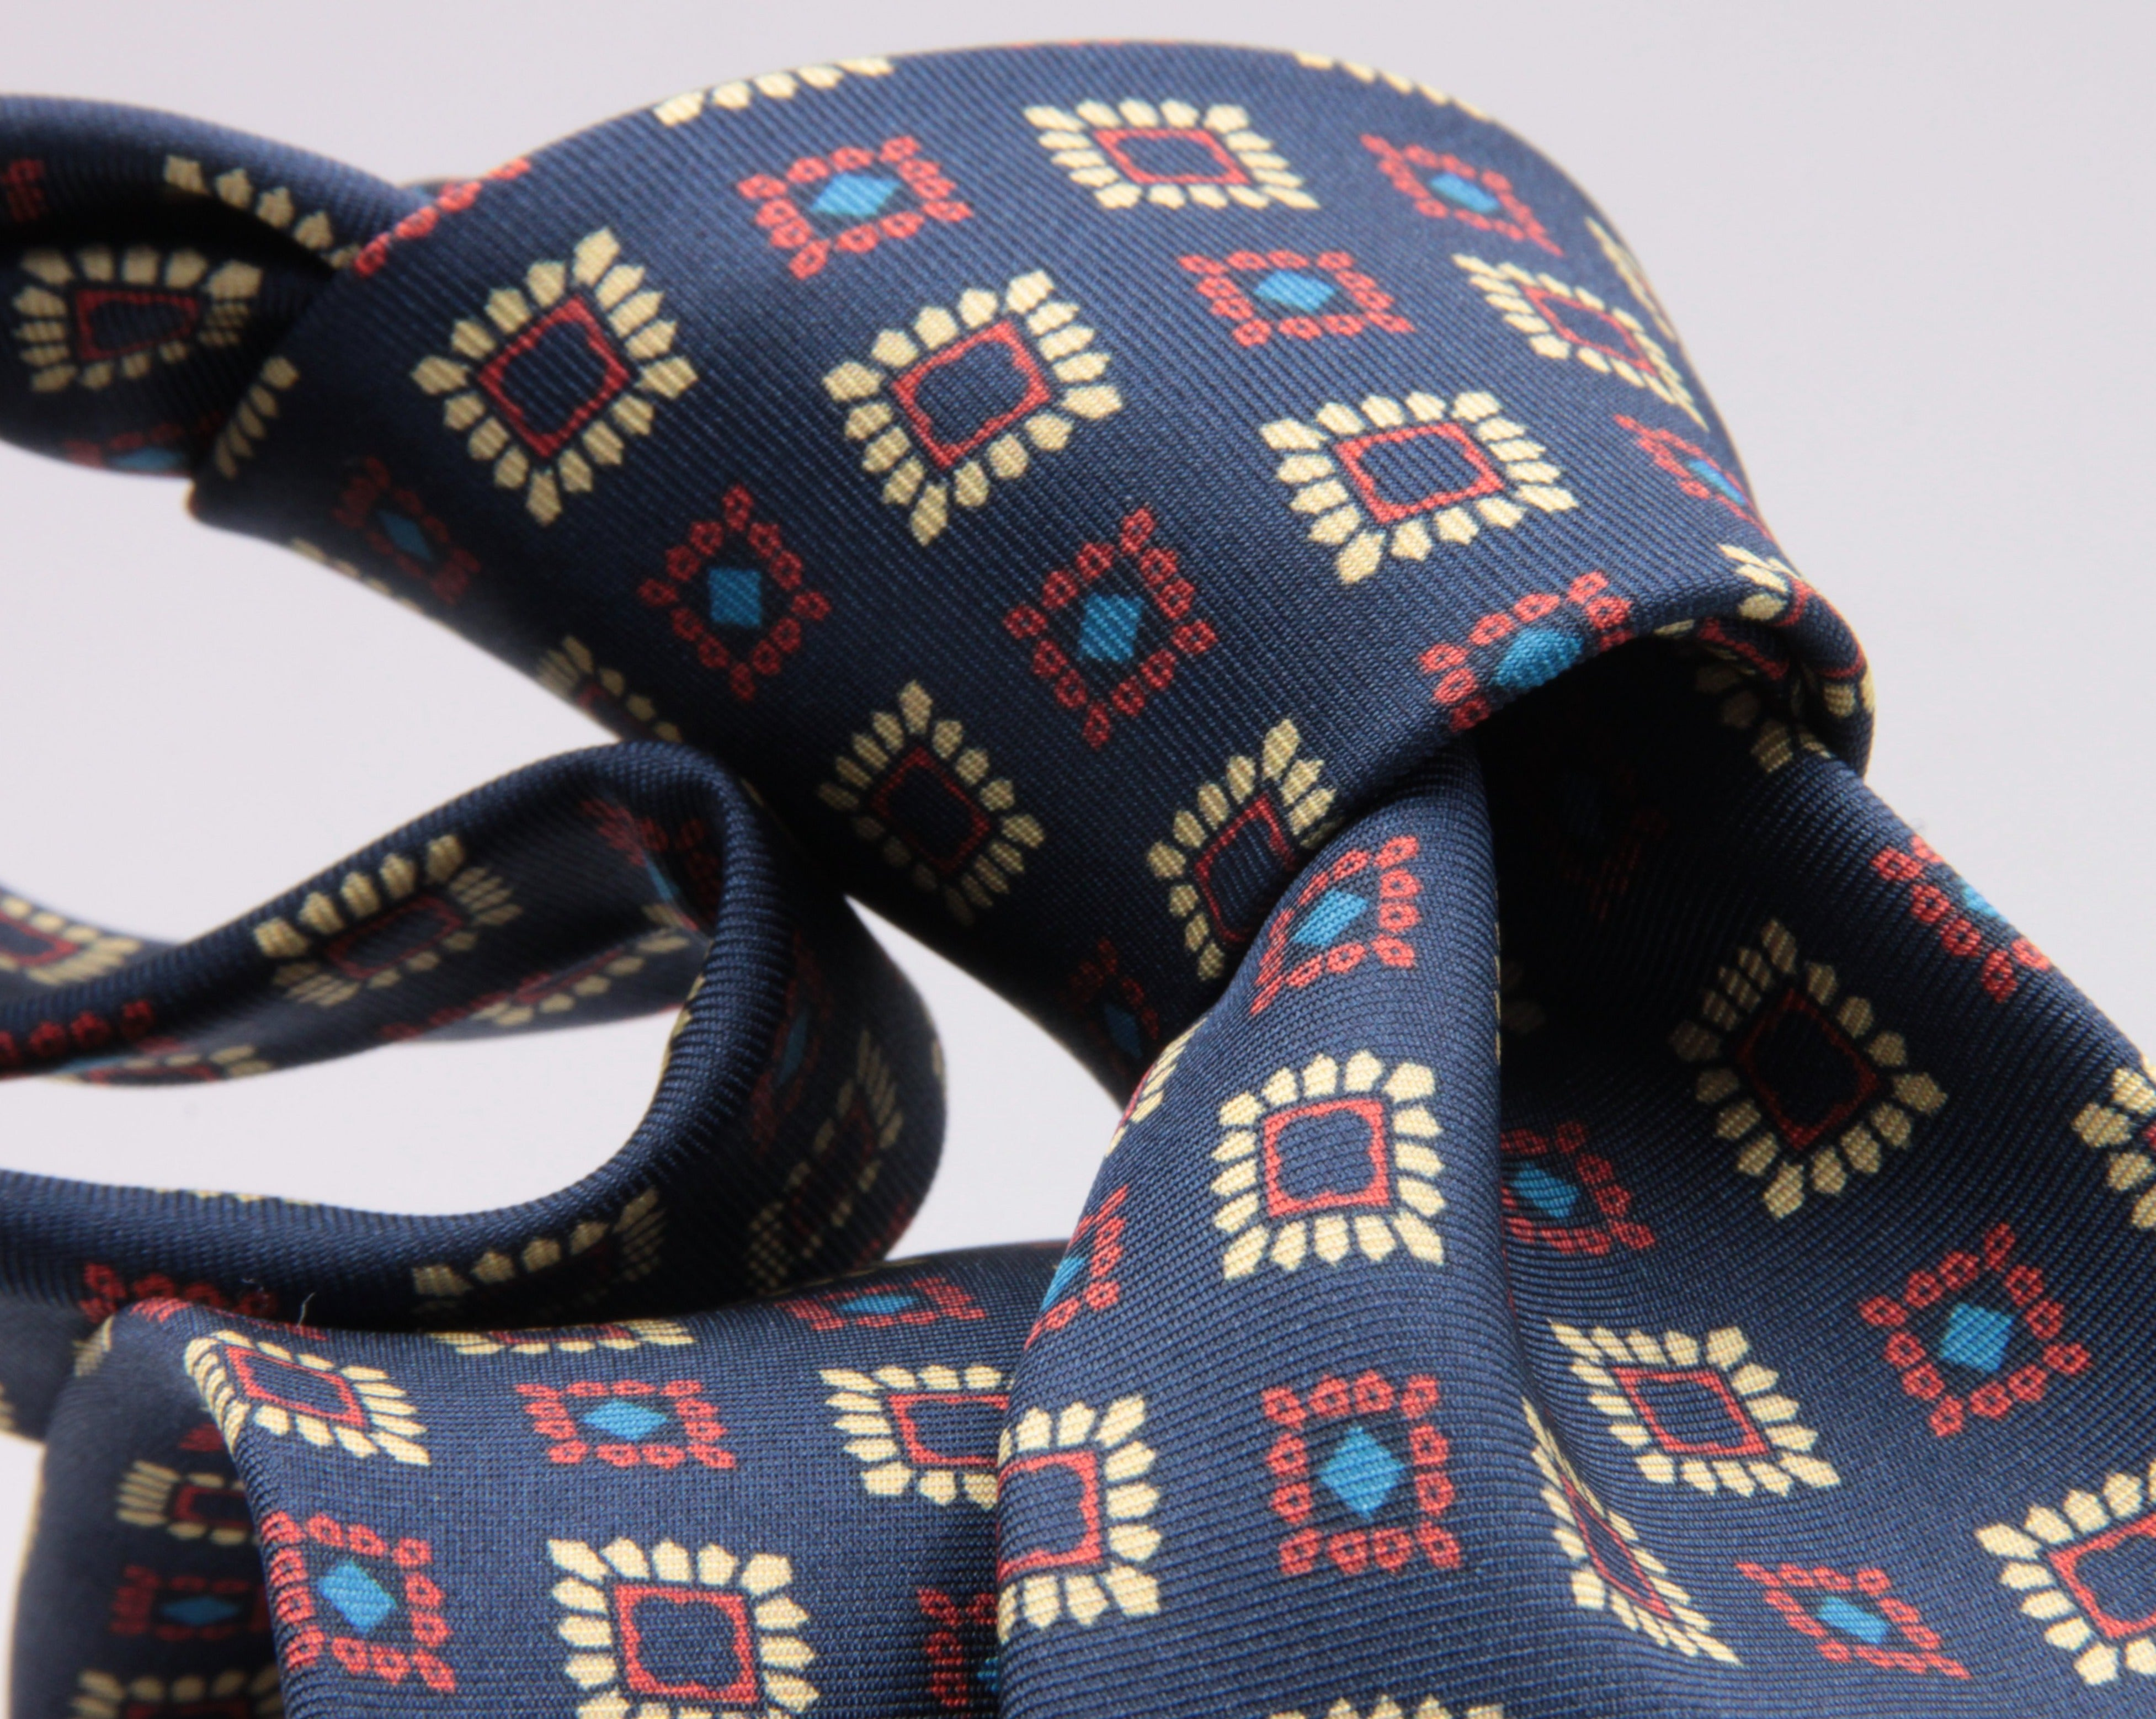 Cruciani & Bella 100% Silk Printed Tipped Blue, Yellow, Orange and Blue Sky Motif Tie Handmade in Italy 8 cm x 150 cm #4429